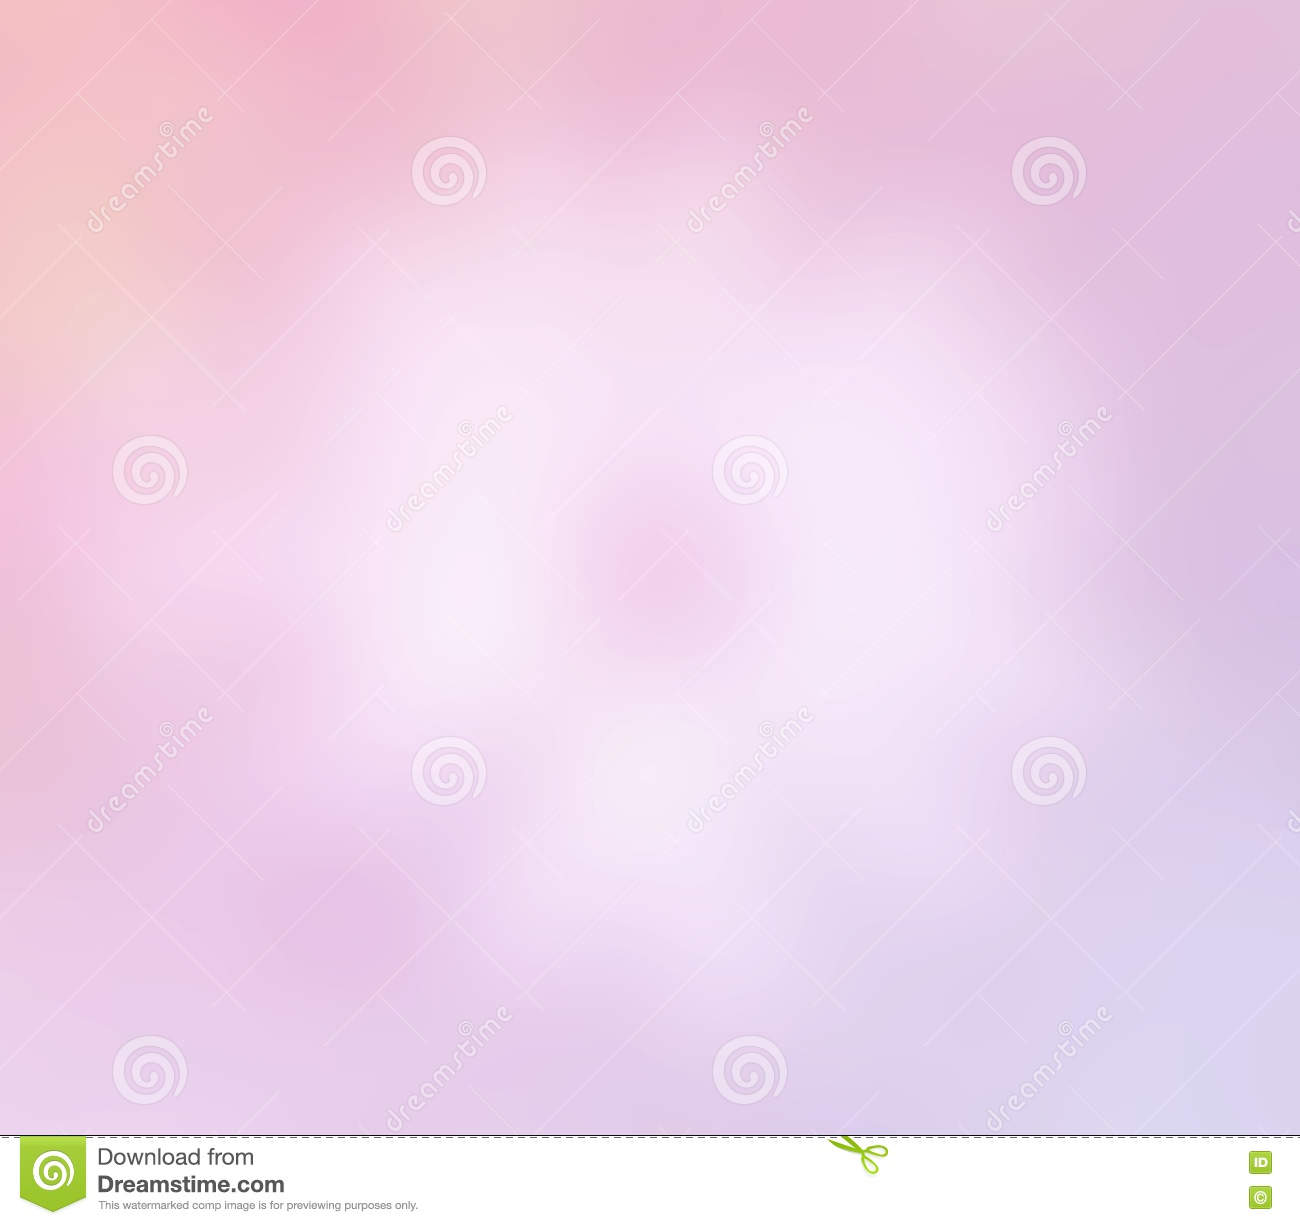 Soft Sweet Blurred Pastel Color Background Abstract